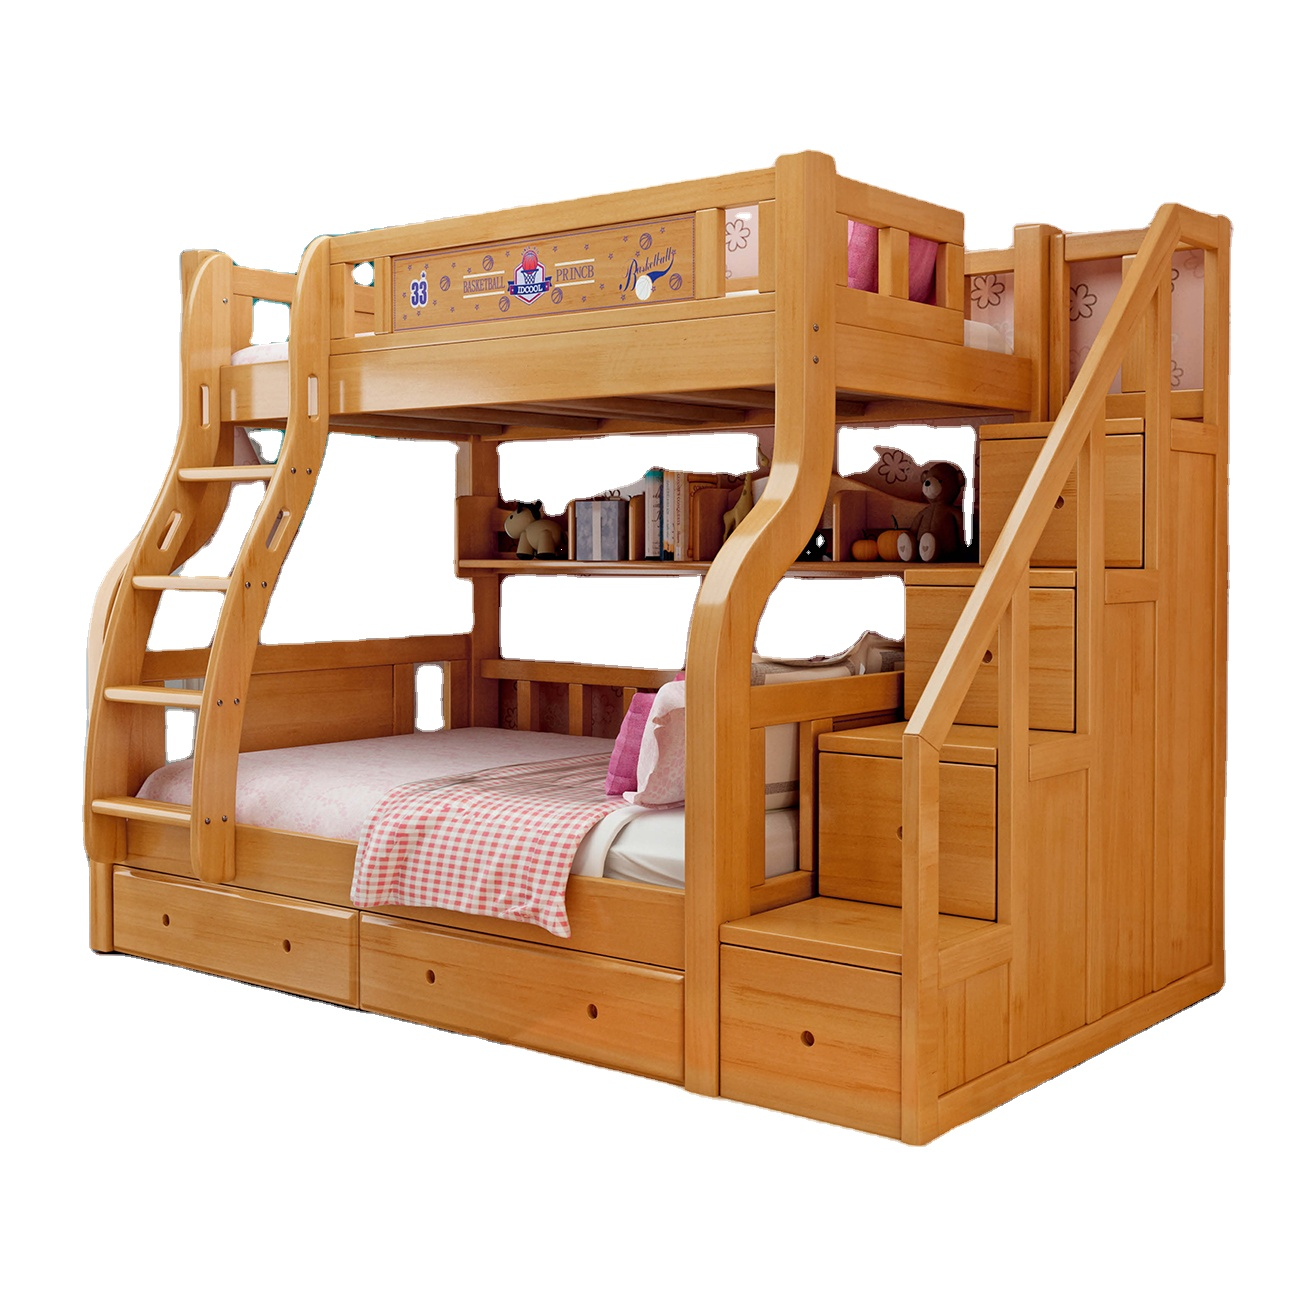 Hot Sale And Low Price Kids Bed Frame Wooden Girl Kids Bunk Bed Sofa Bed For Kids Buy Kids Bunk Bed Sofa Bunk Bed Bunk Bed Prices Product On Alibaba Com